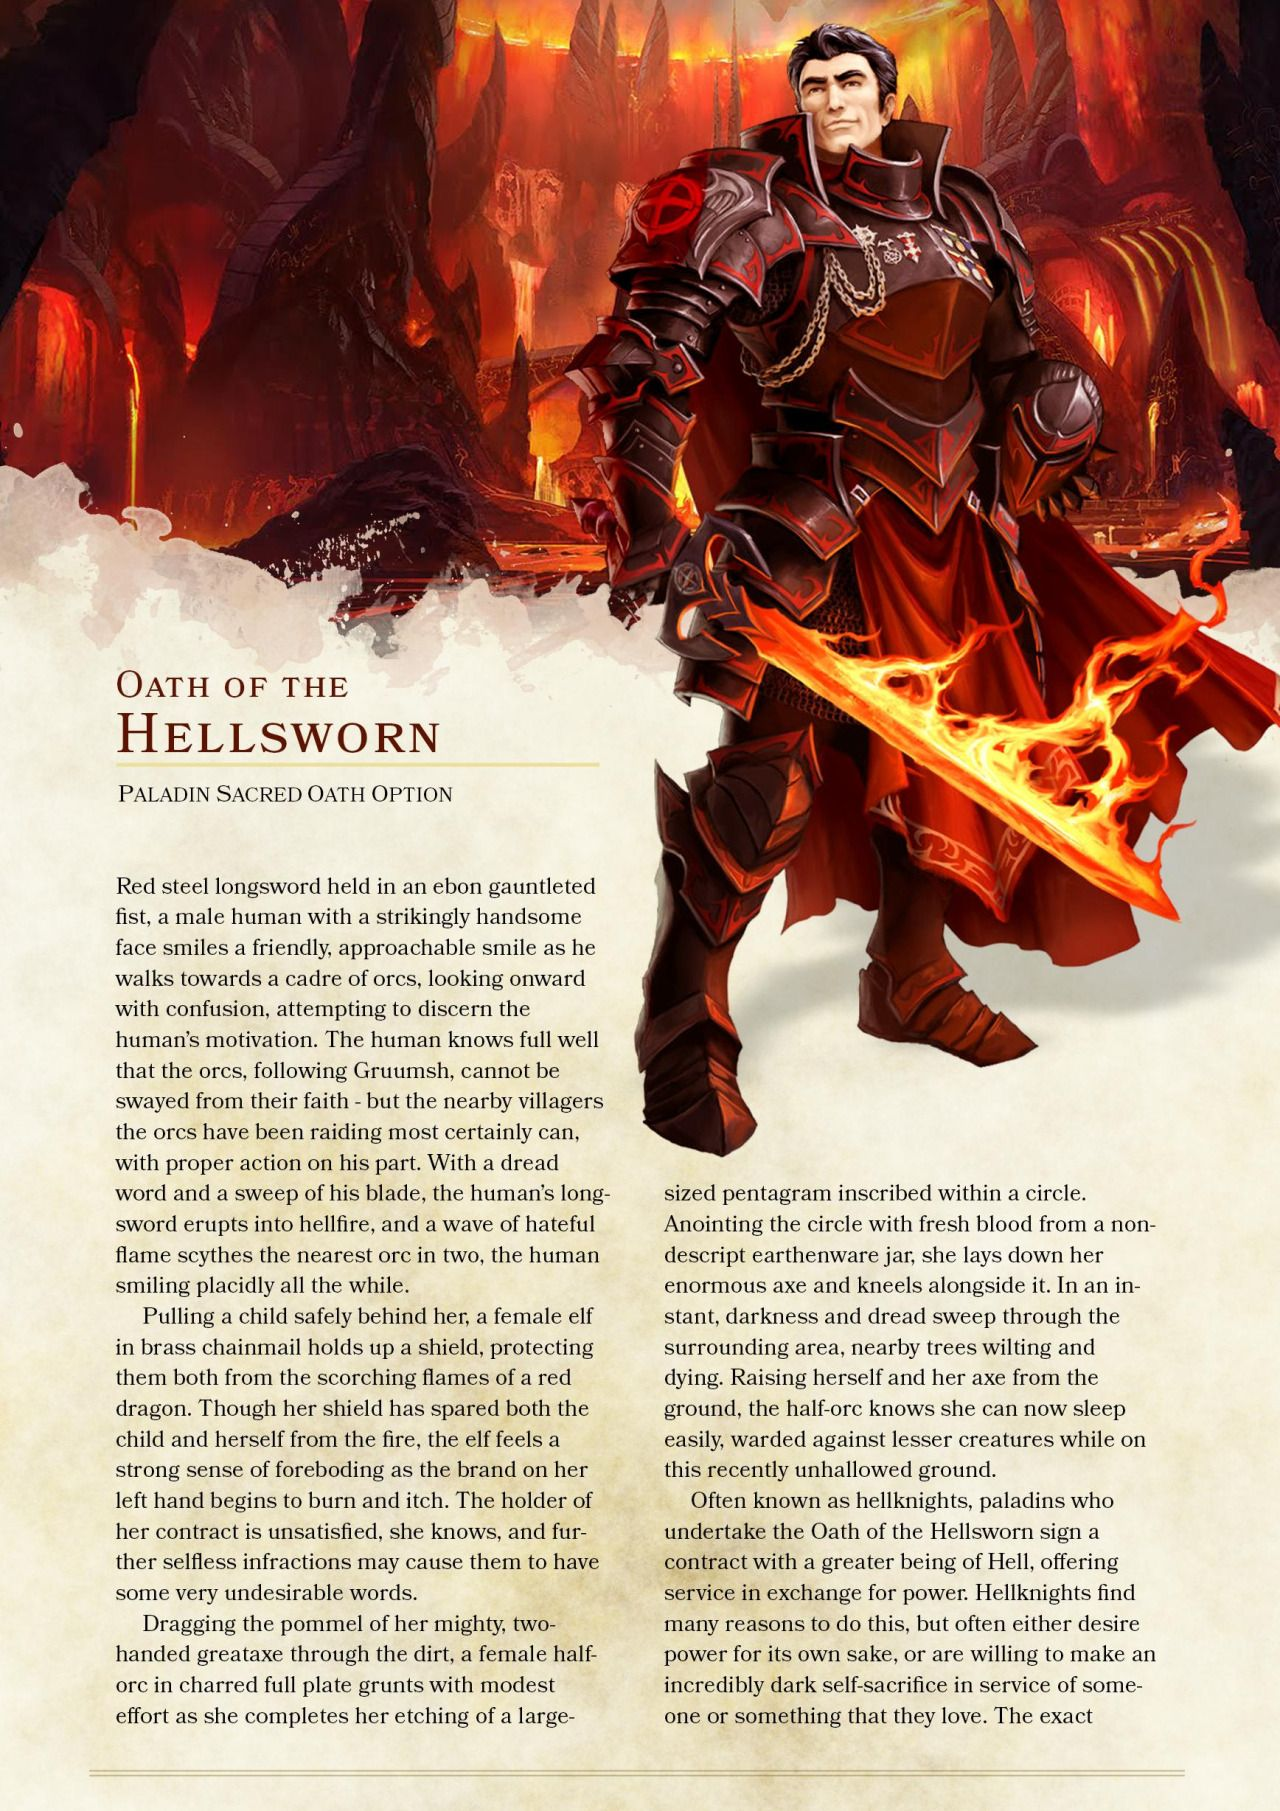 DnD 5e Homebrew — Oath of the Hellsworn Paladin by... | Dnd 5e homebrew, Dungeons and dragons ...